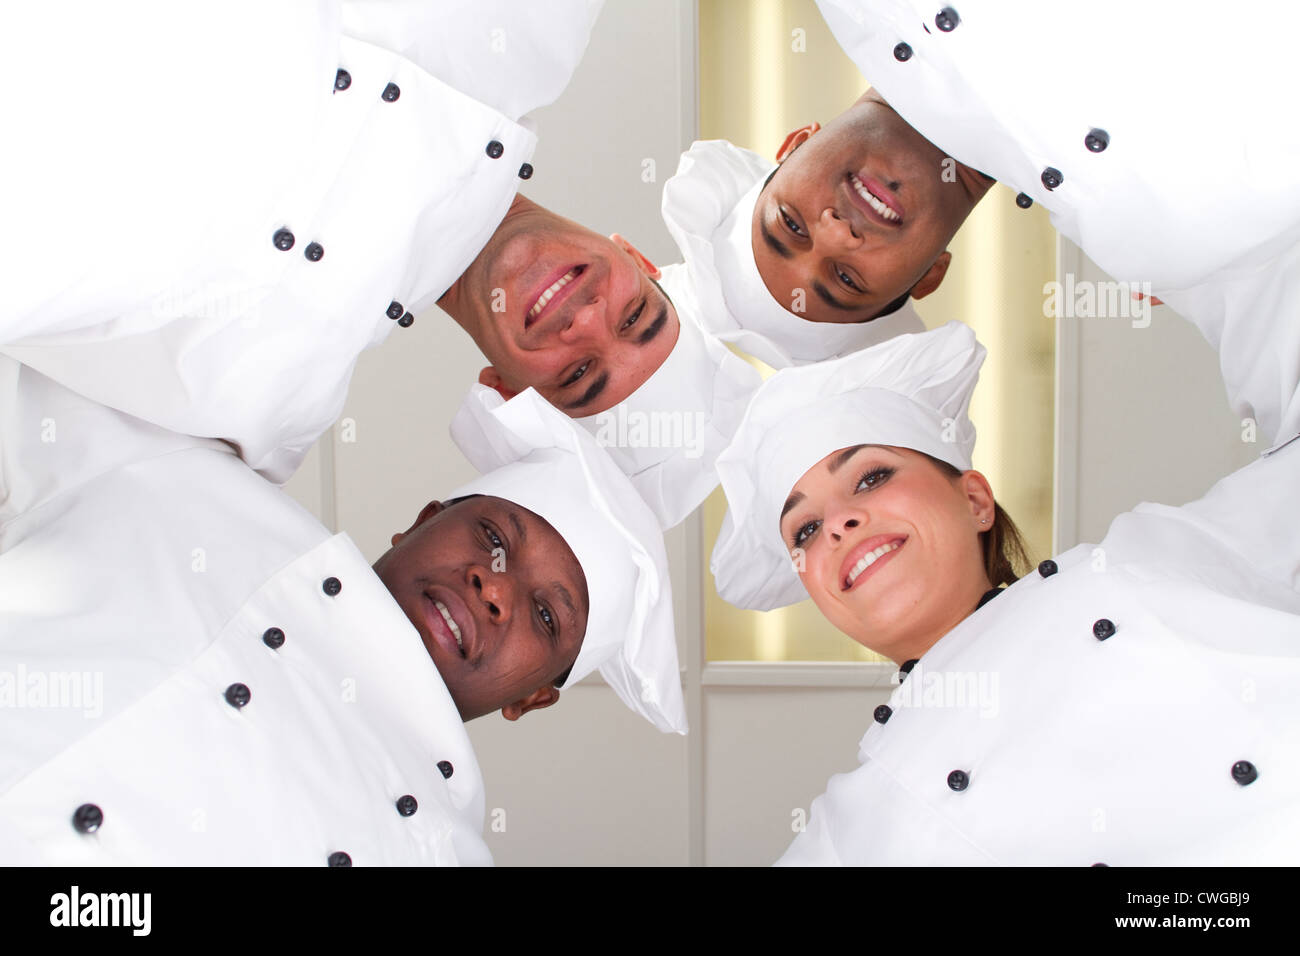 underneath of group of professional chefs heads together form a team - Stock Image